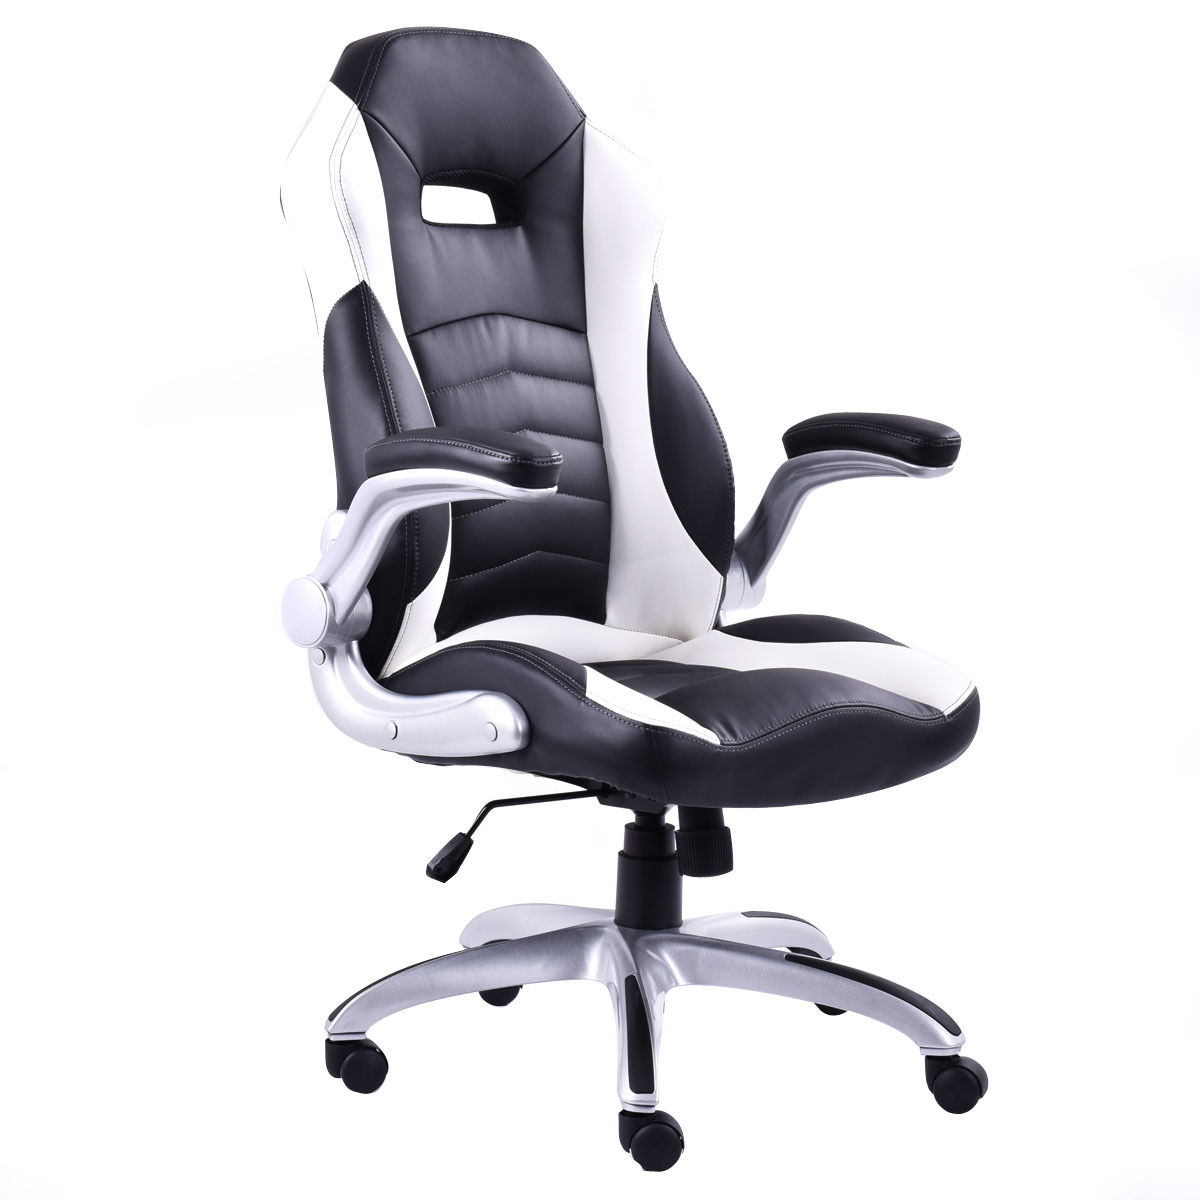 Giantex New PU Leather Executive Racing Style Bucket Seat Office Desk Swivel Chair High Quality Gaming Chairs HW52435 giantex pu leather high back racing style bucket seat gaming chair with head pillow modern office desk computer chairs hw52433